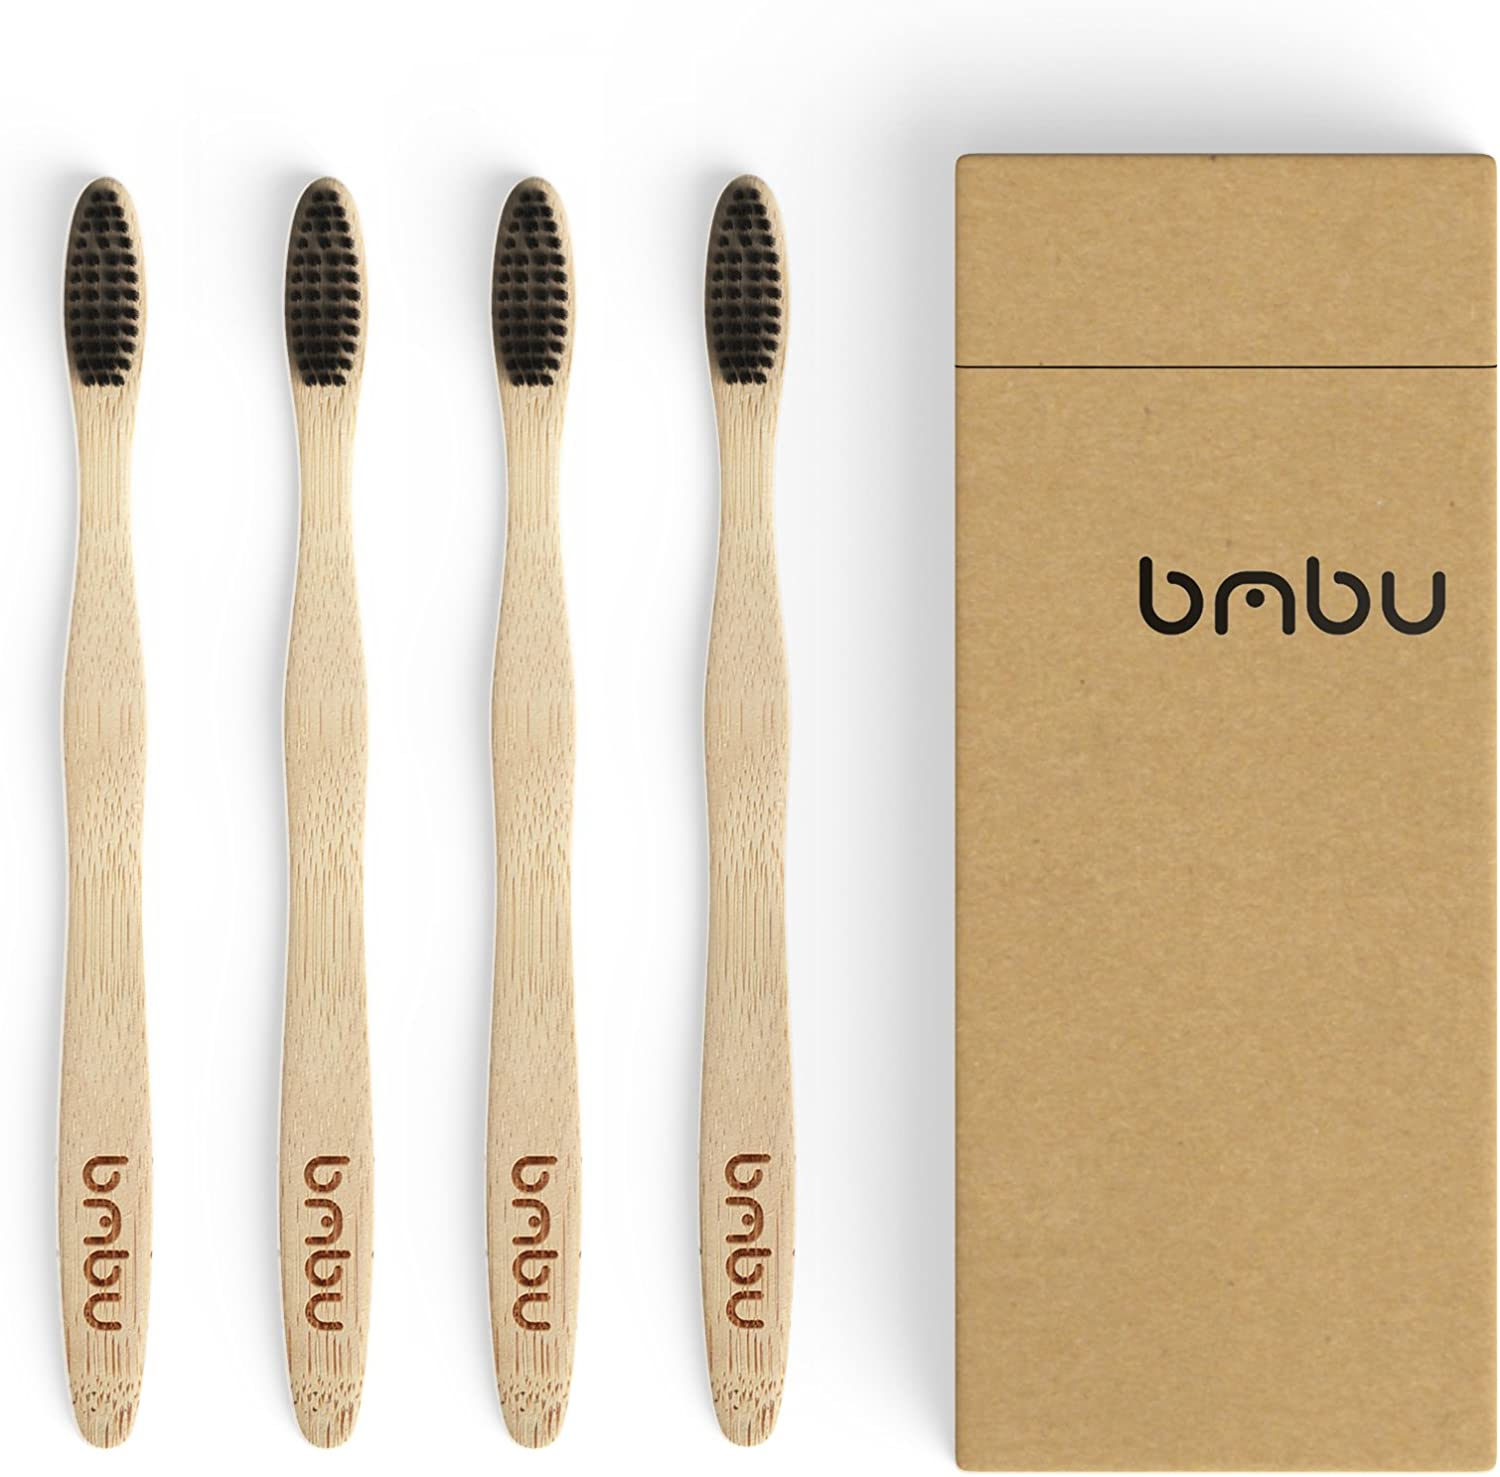 Bamboo Toothbrush 4 Pack - Soft Medium Bristles unisex Tooth 2021 new Charcoal